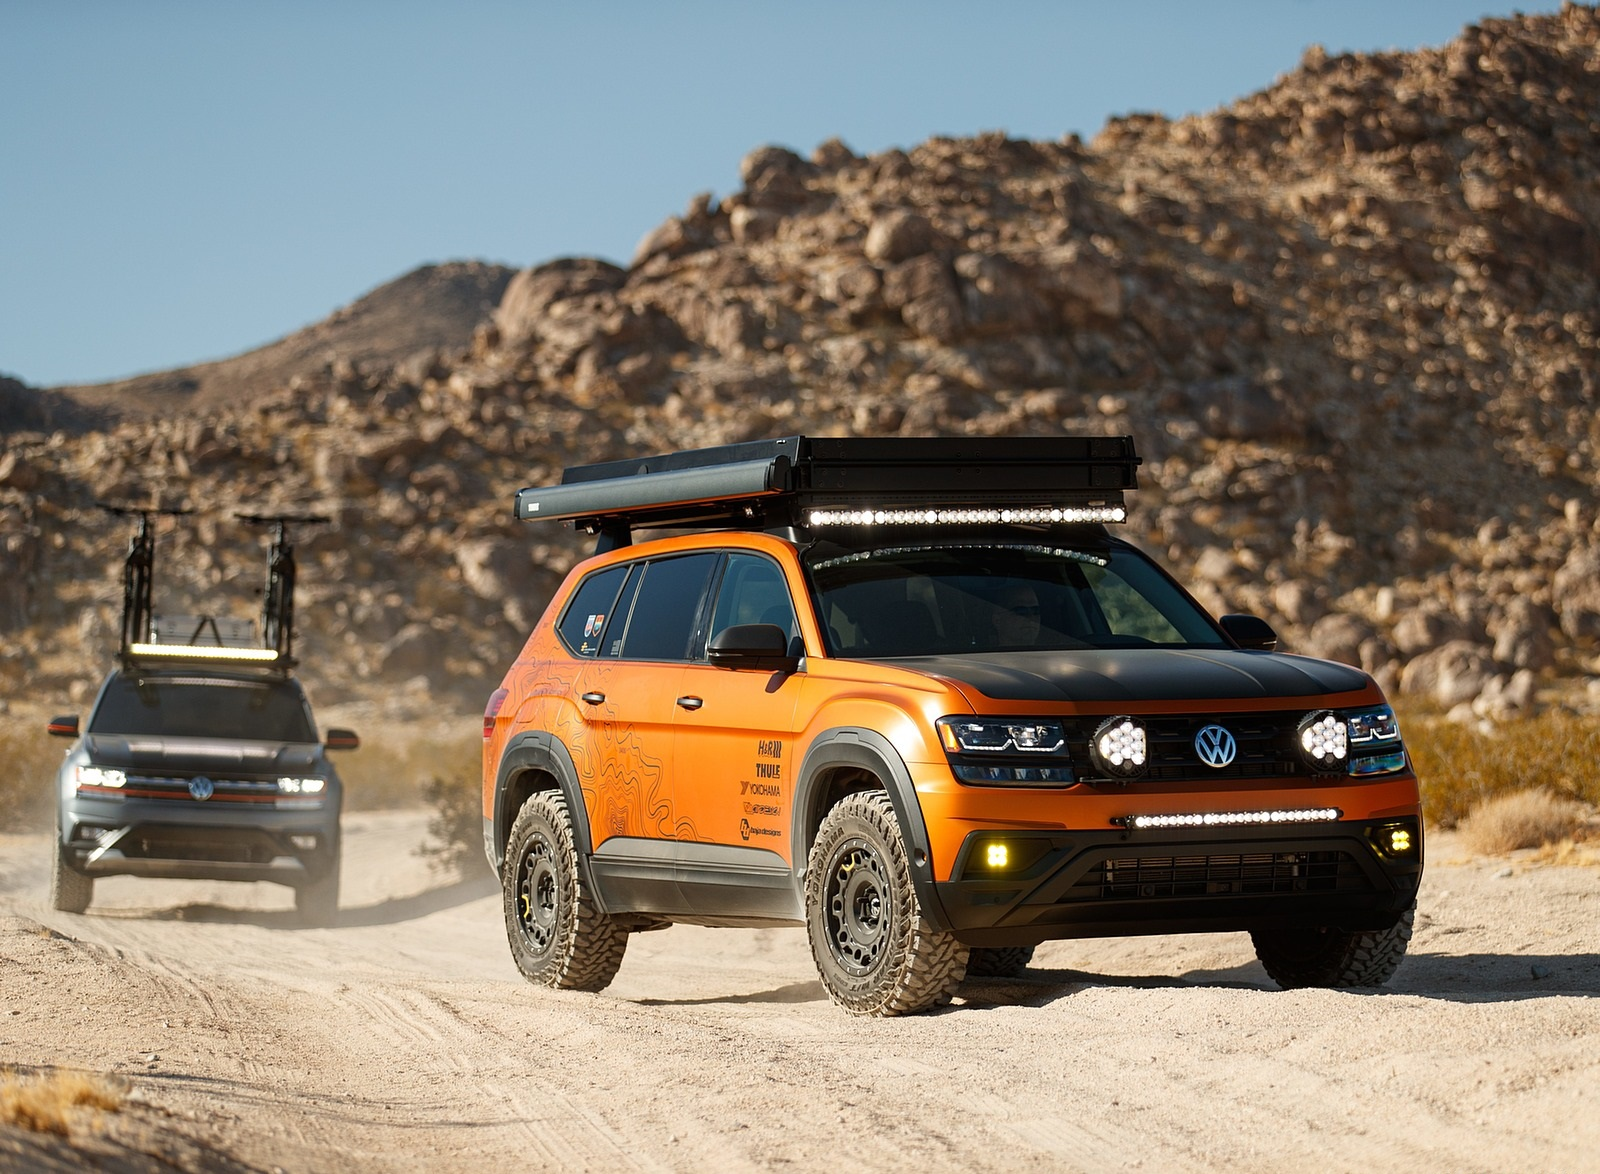 2019 Volkswagen Atlas Adventure Concept and Atlas Basecamp Concept Wallpapers (1)